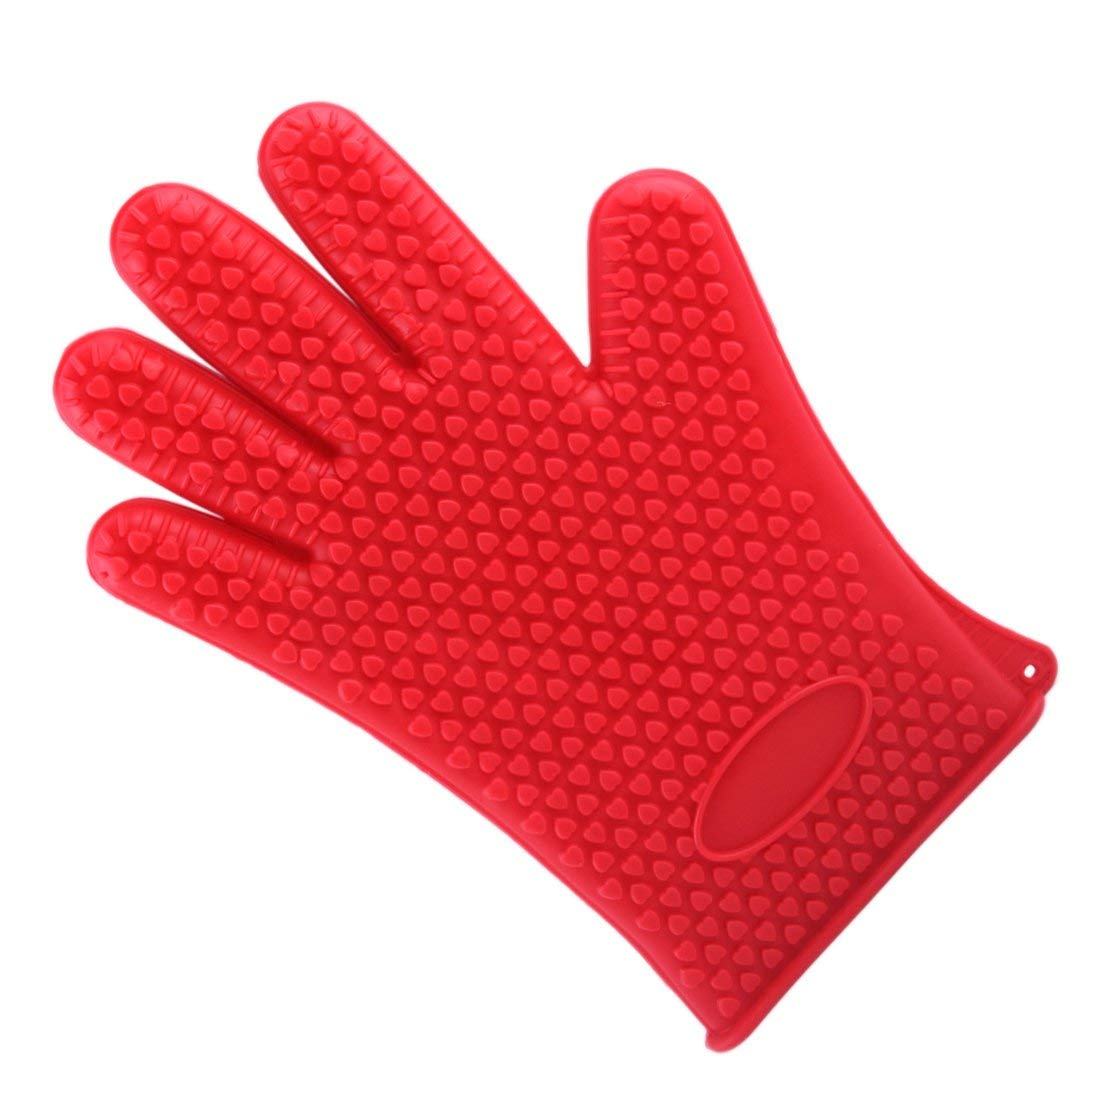 Silicone Heat Resistant Glove Microwave Oven Pot Baking BBQ Cooking Mitt (Red)